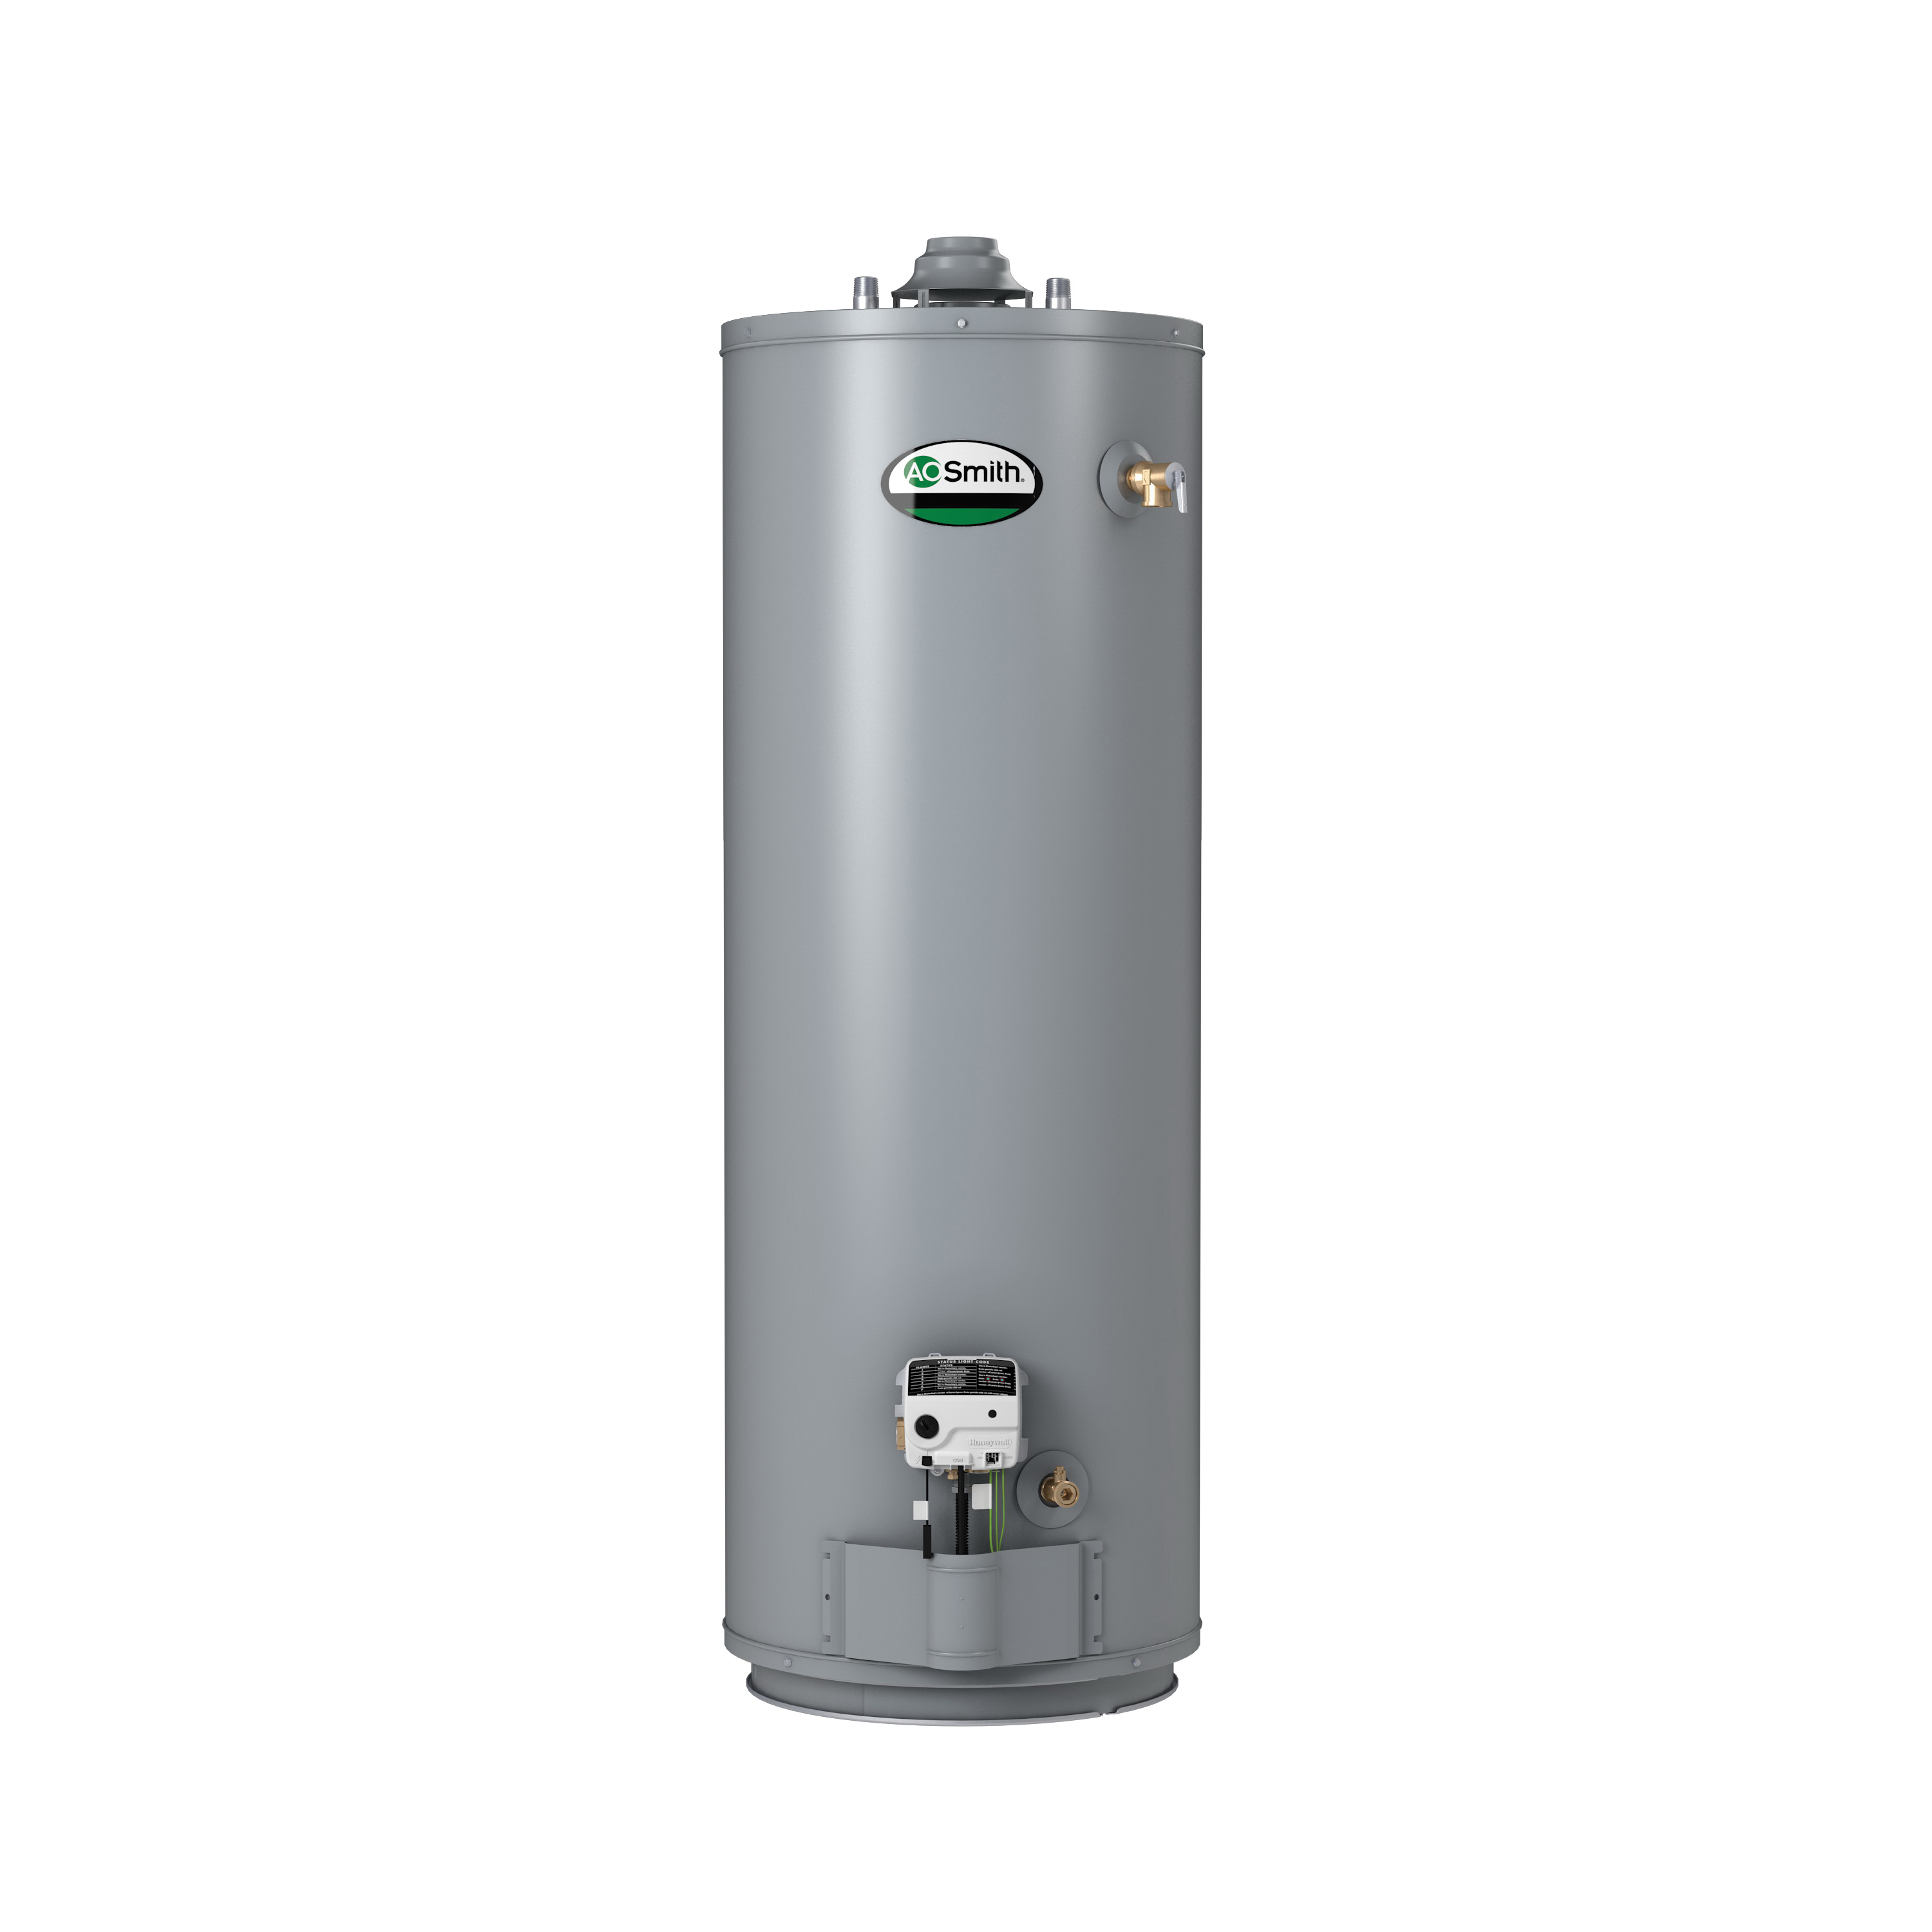 AO Smith® ProLine® 100210346 GUC-40 Gas Water Heater, 40000 Btu/hr Heating, 40 gal Tank, Natural Gas Fuel, Atmospheric Vent, 41 gph at 90 deg F Recovery, Tall